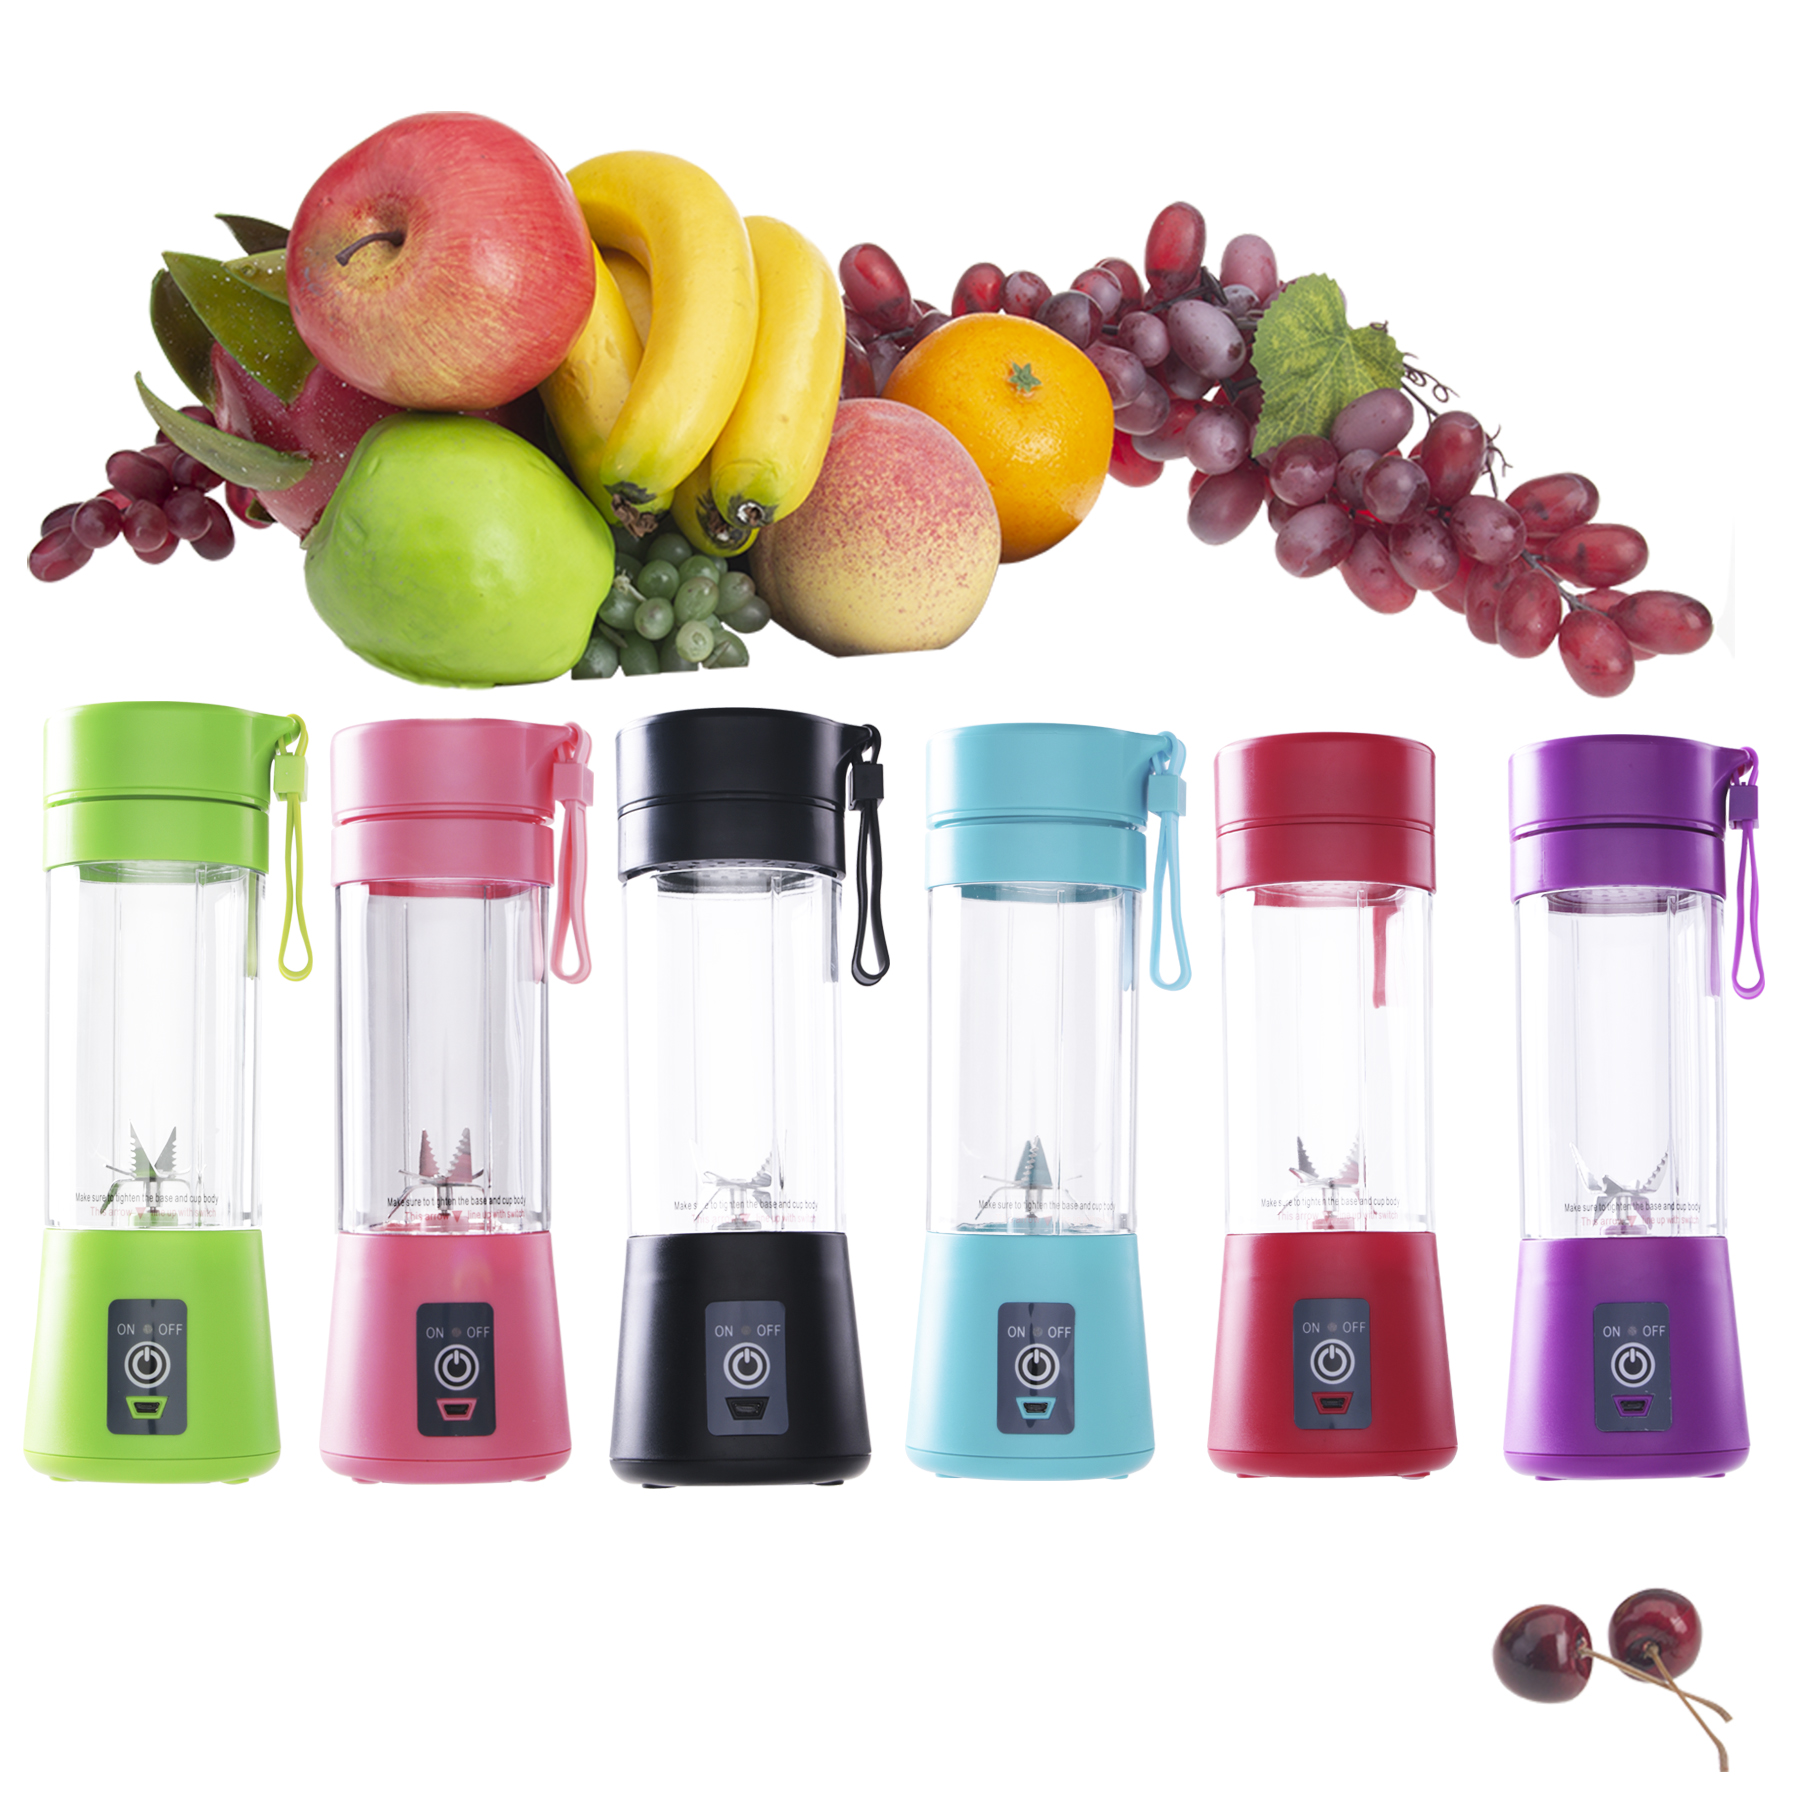 400ml Portable Juice Blender USB Juicer Cup Multi-function Fruit Mixer Six Blade Mixing Machine Smoothies Baby Food dropshipping image